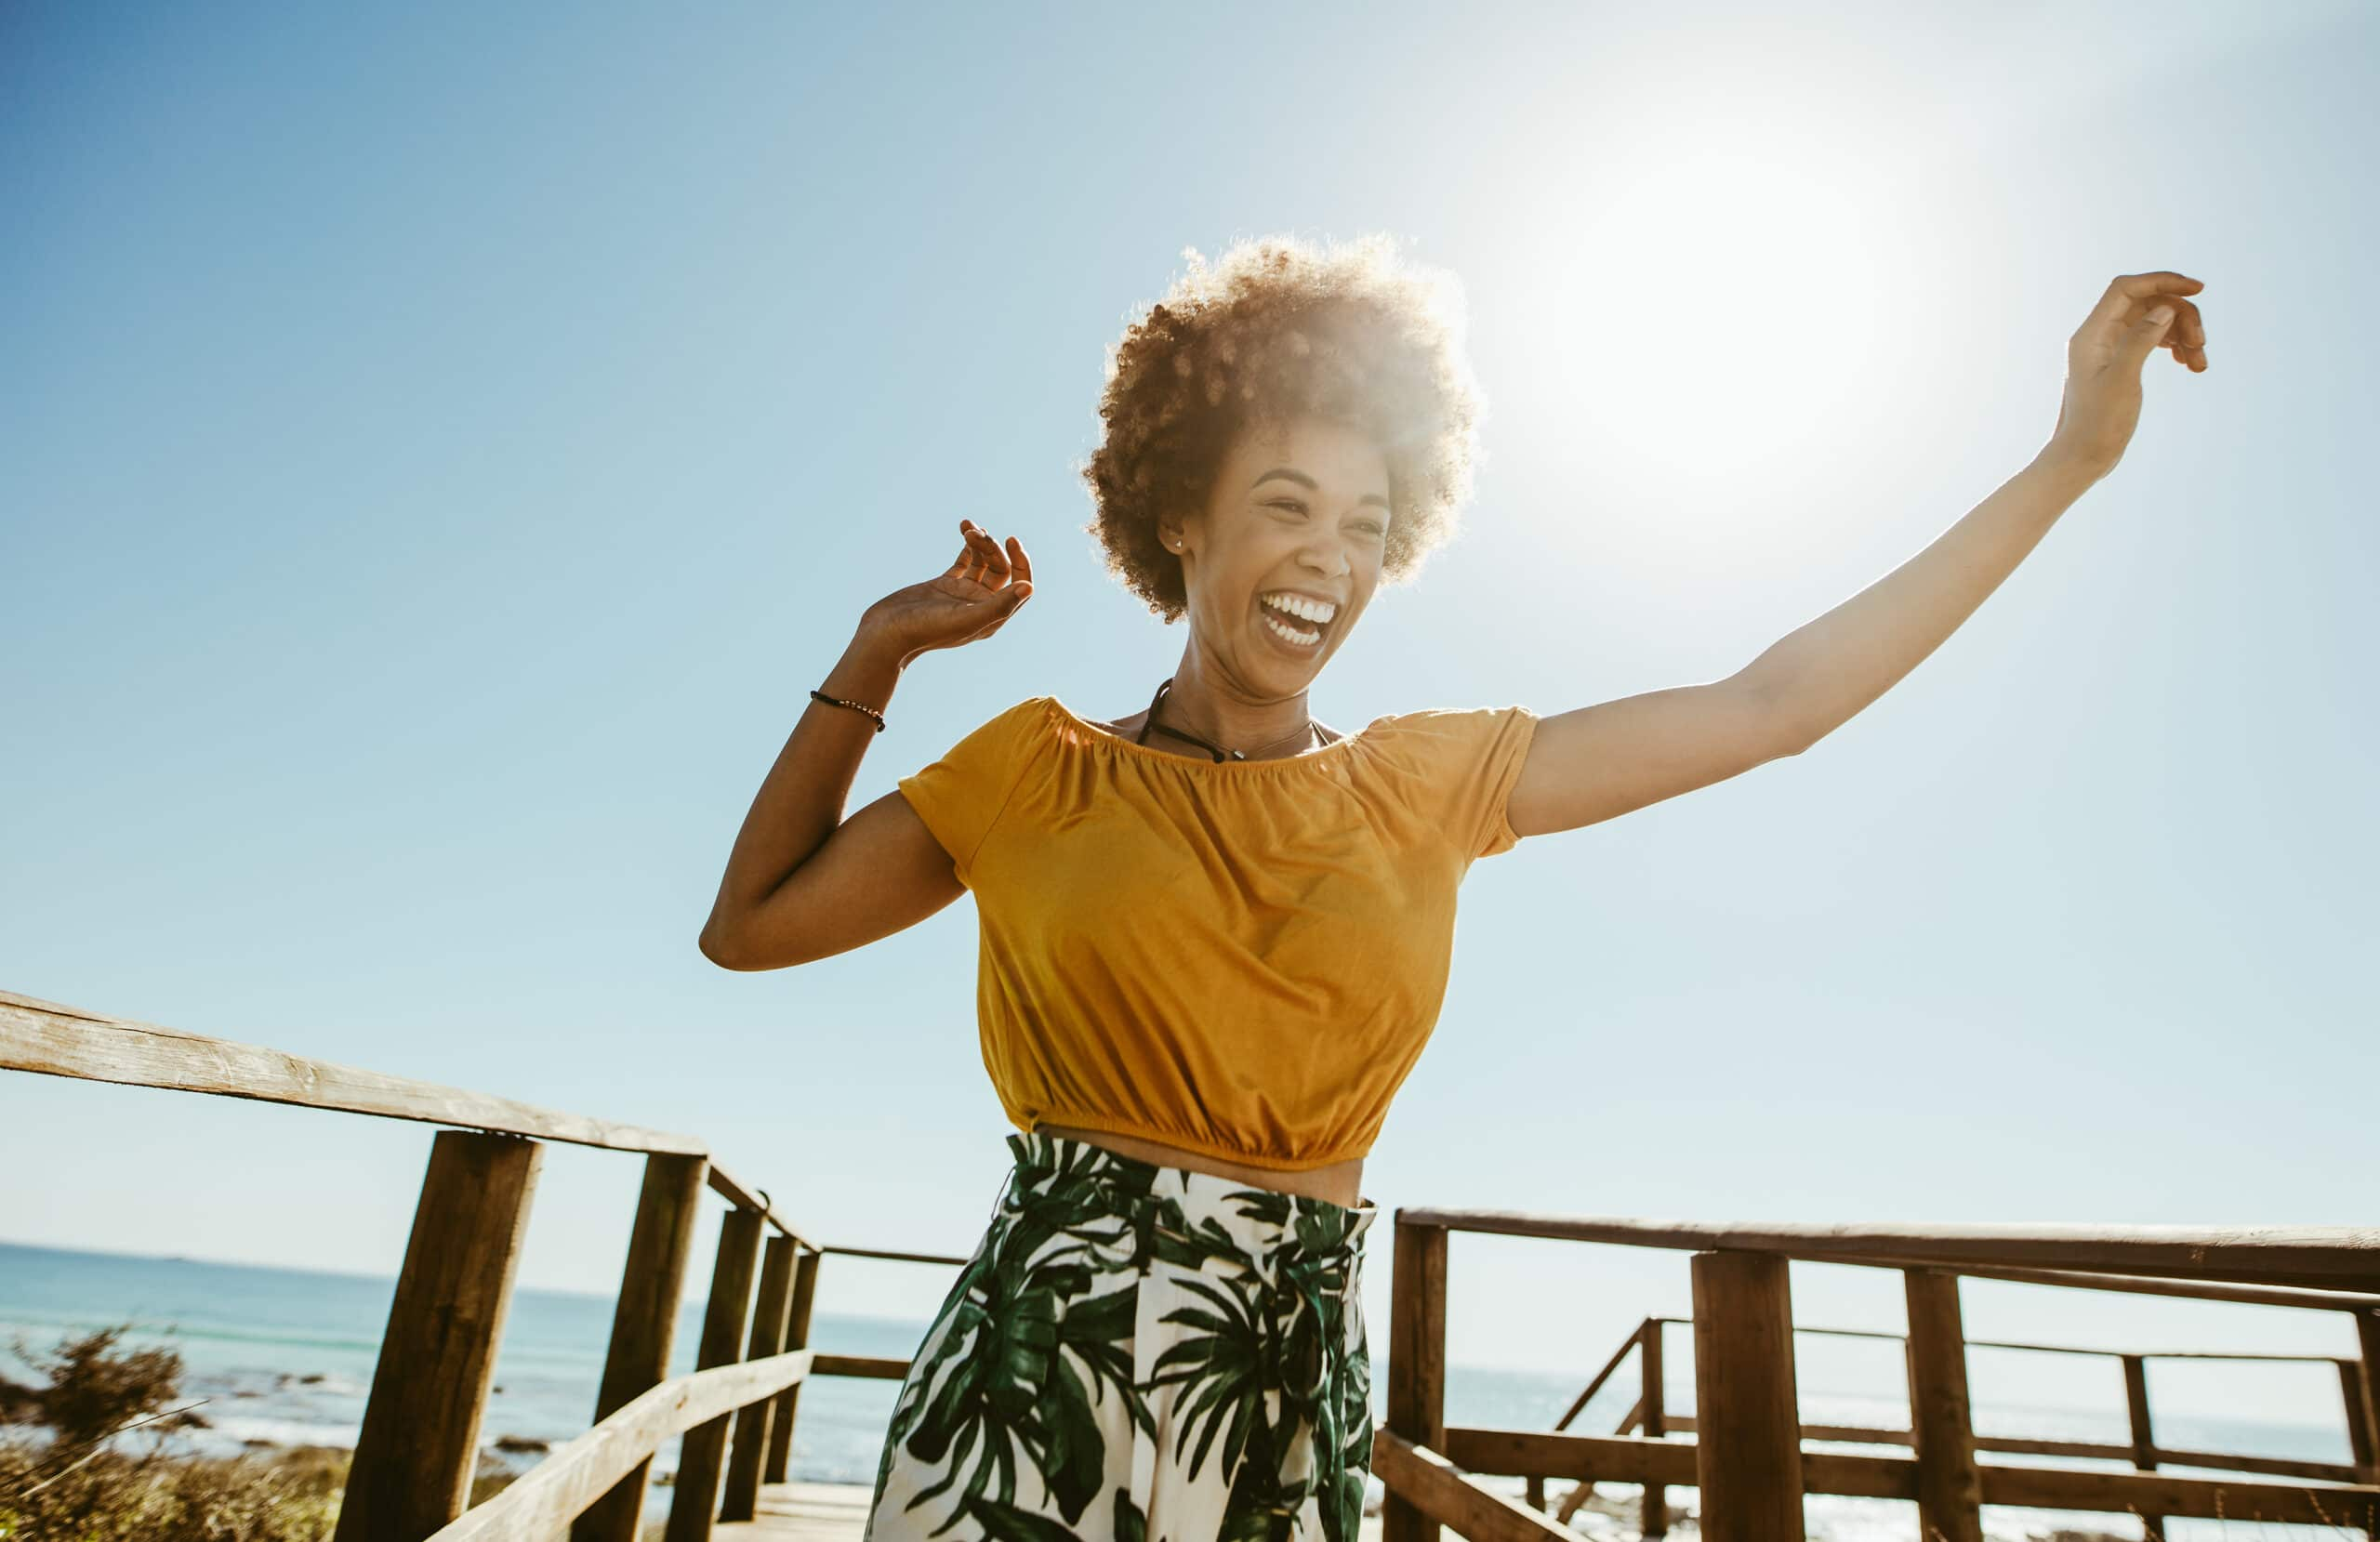 Ten things you can do to change your life for the better